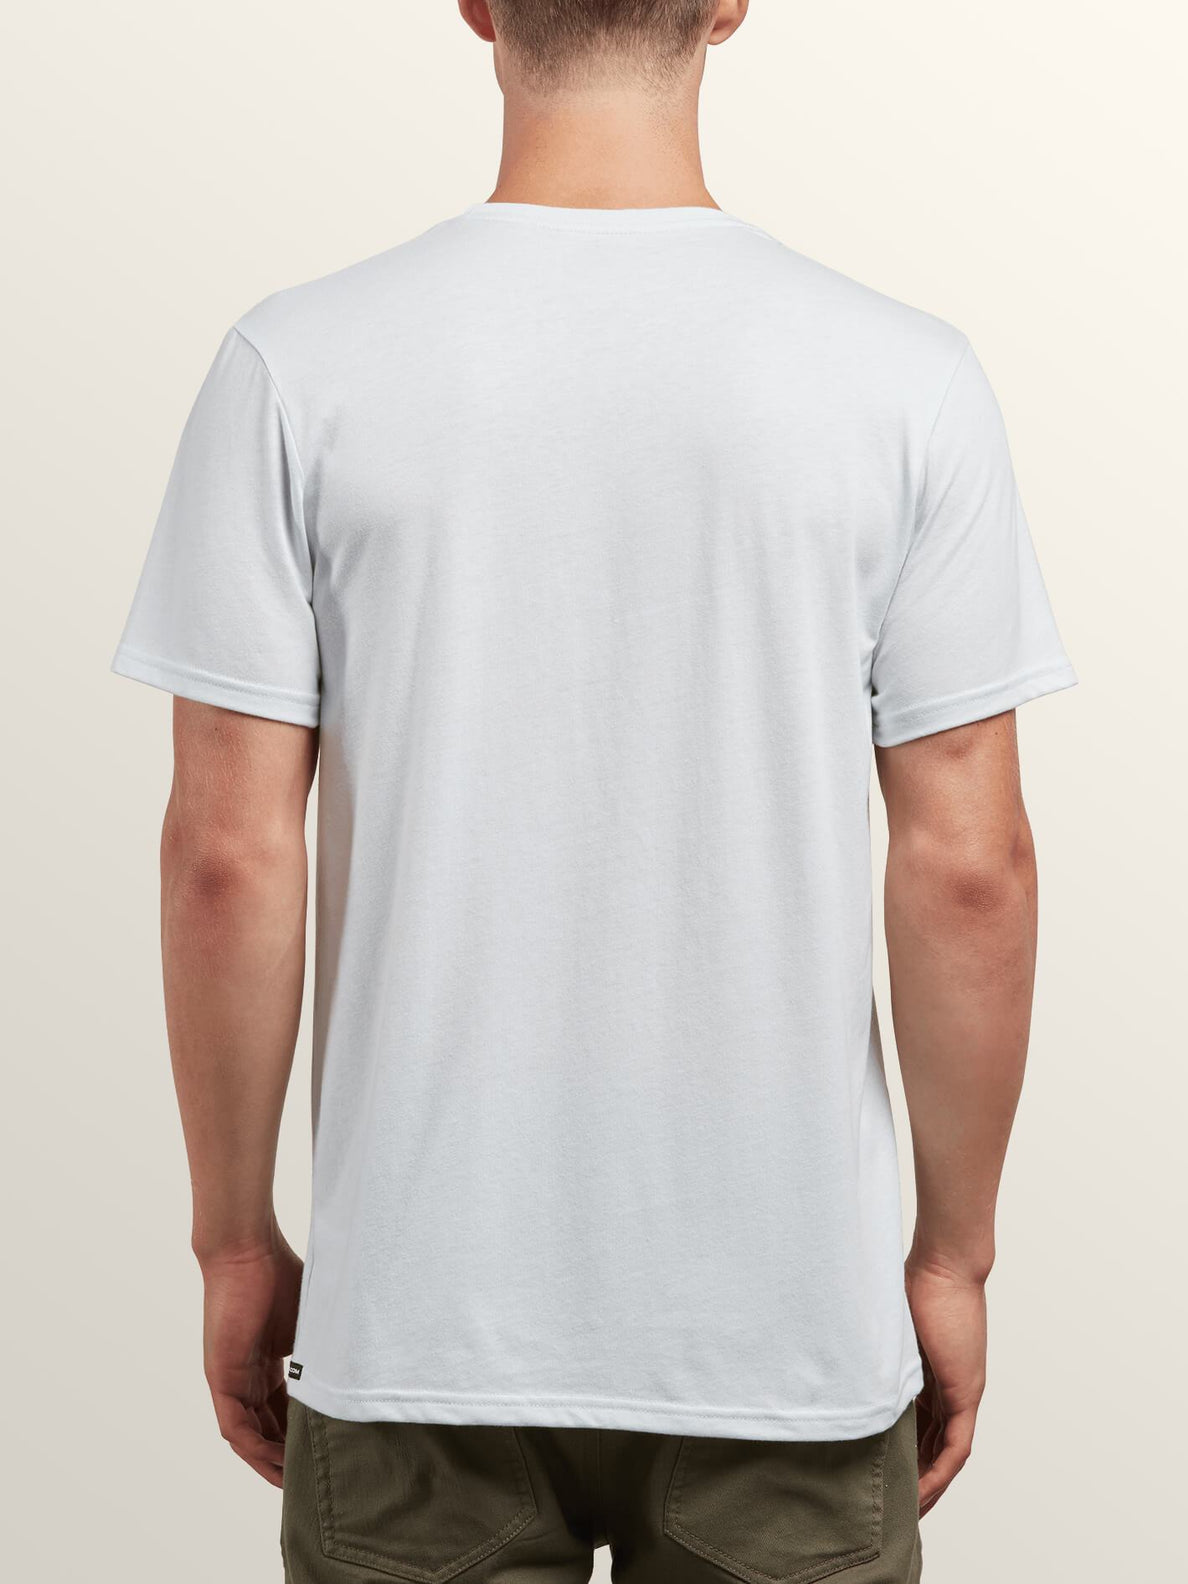 Bold Short Sleeve Tee In White, Back View